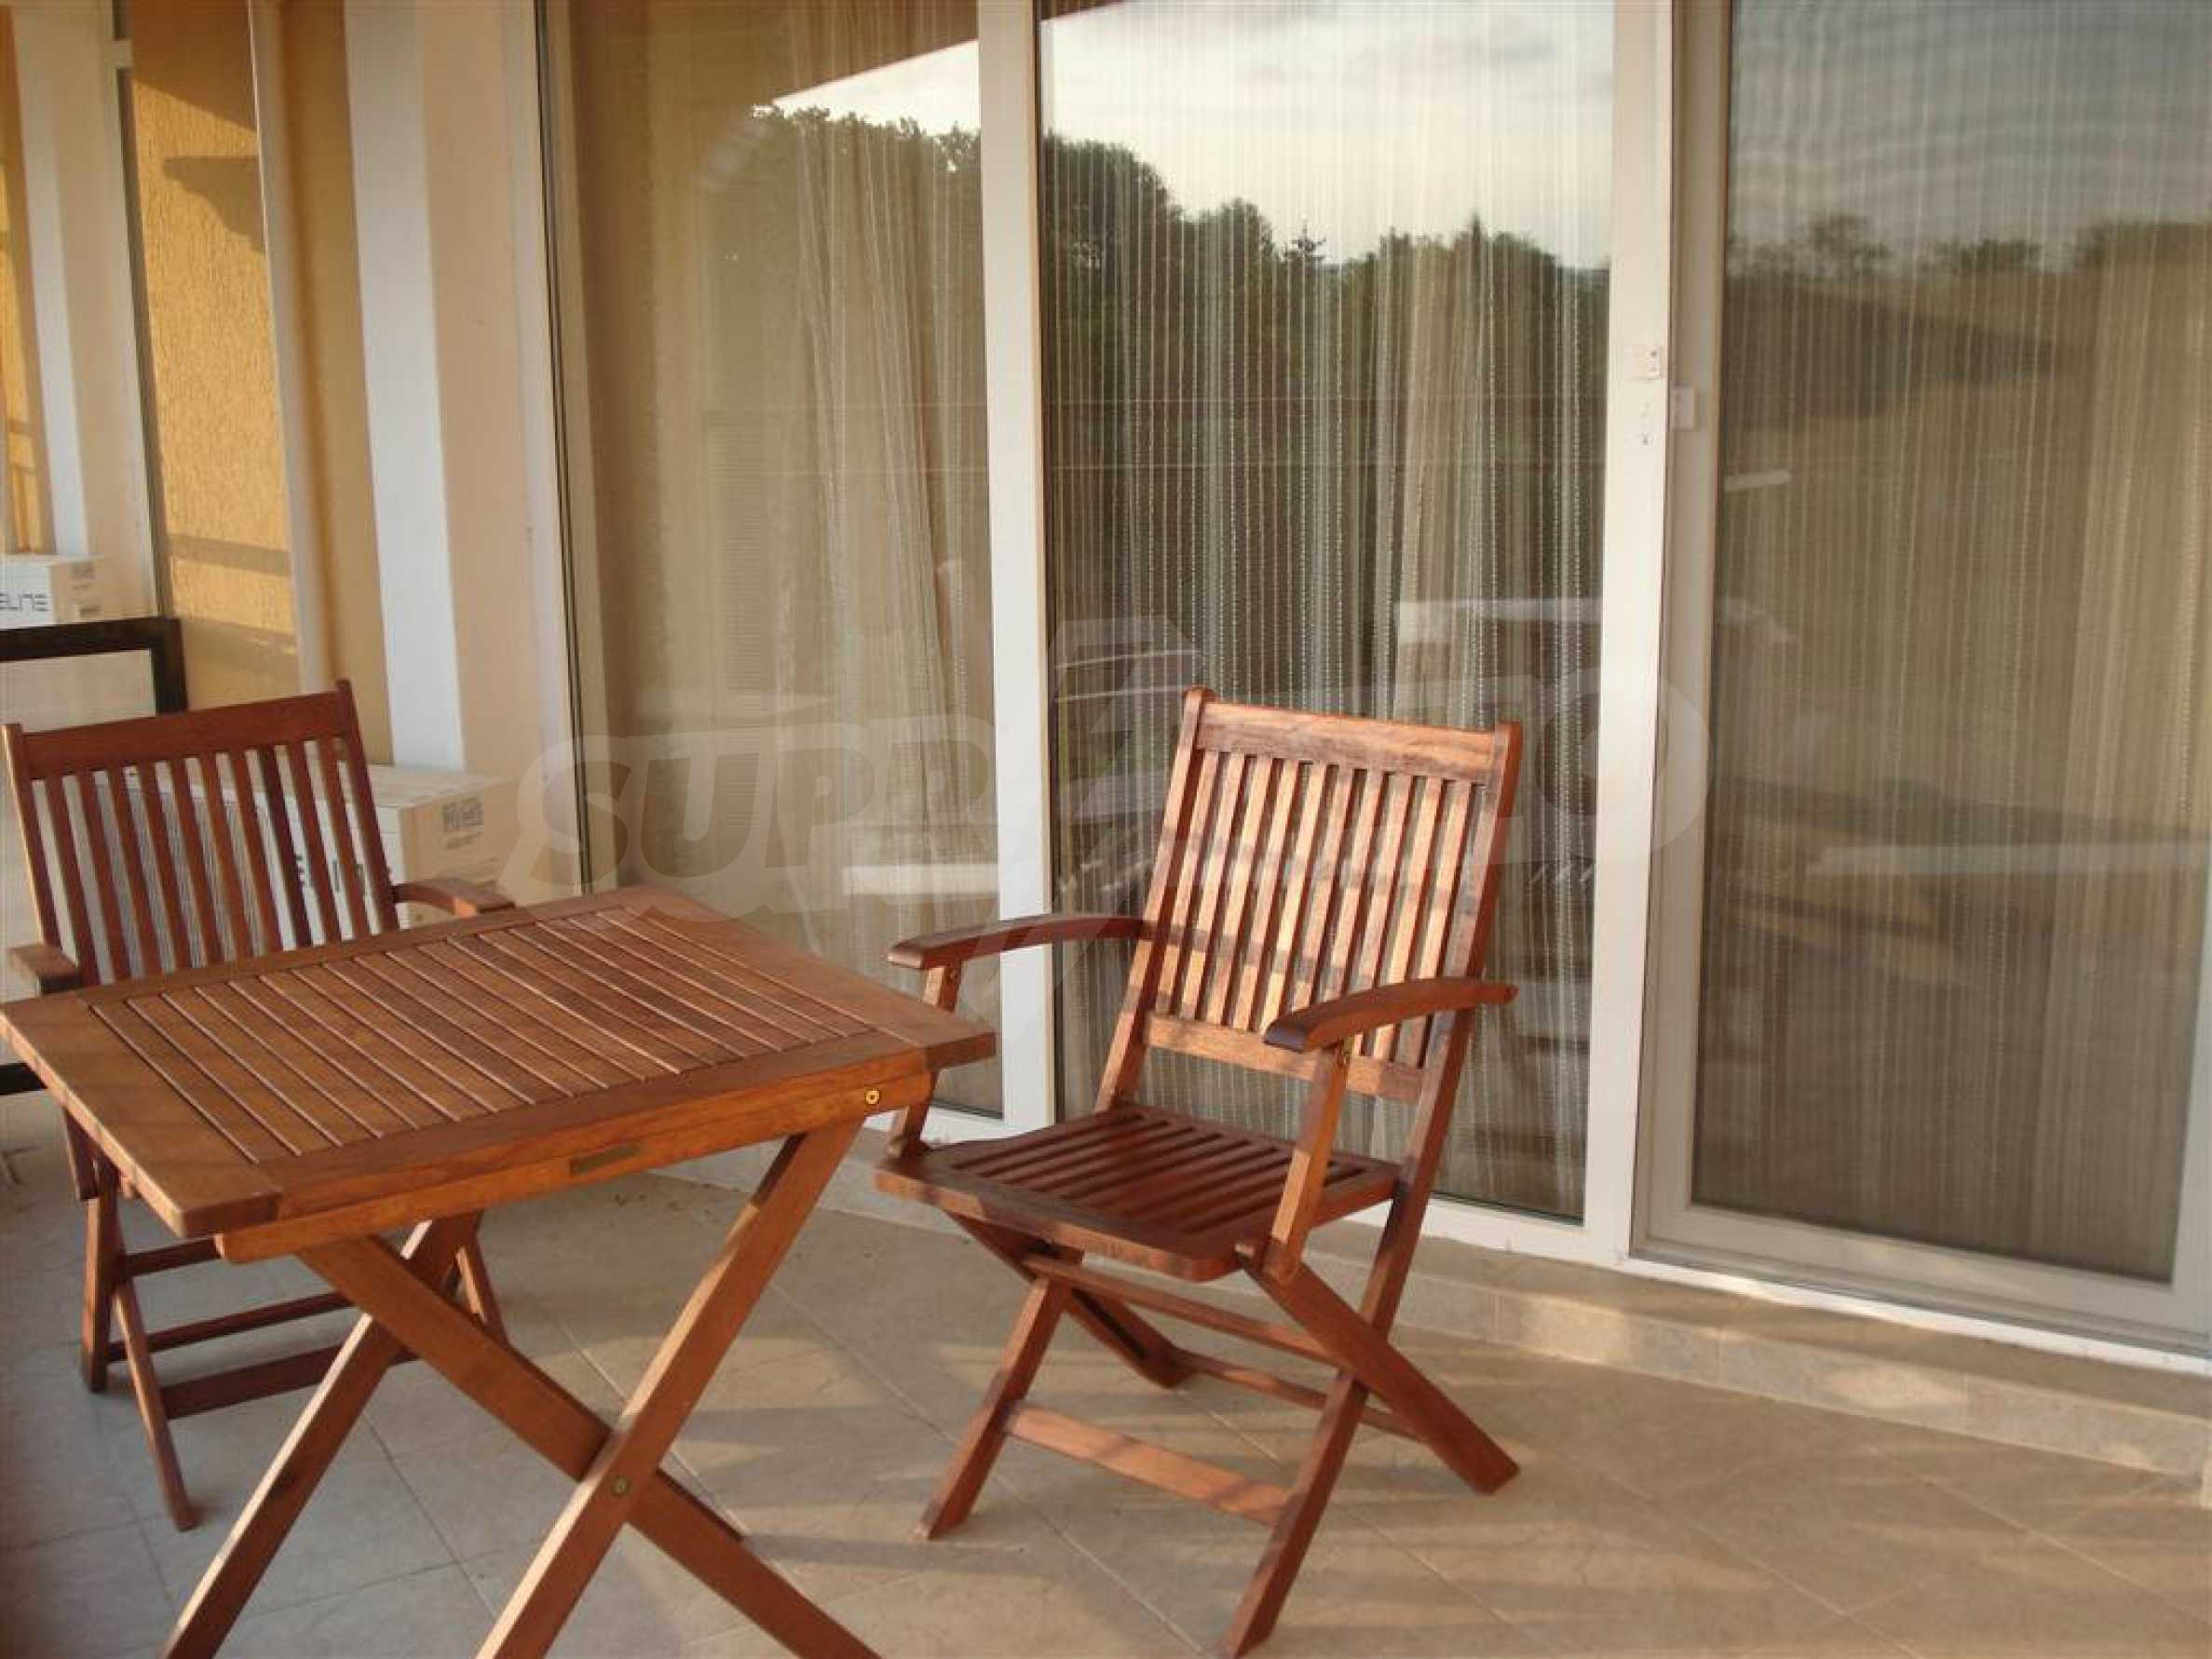 Studio for sale in Midia Grand Resort in Aheloy 2